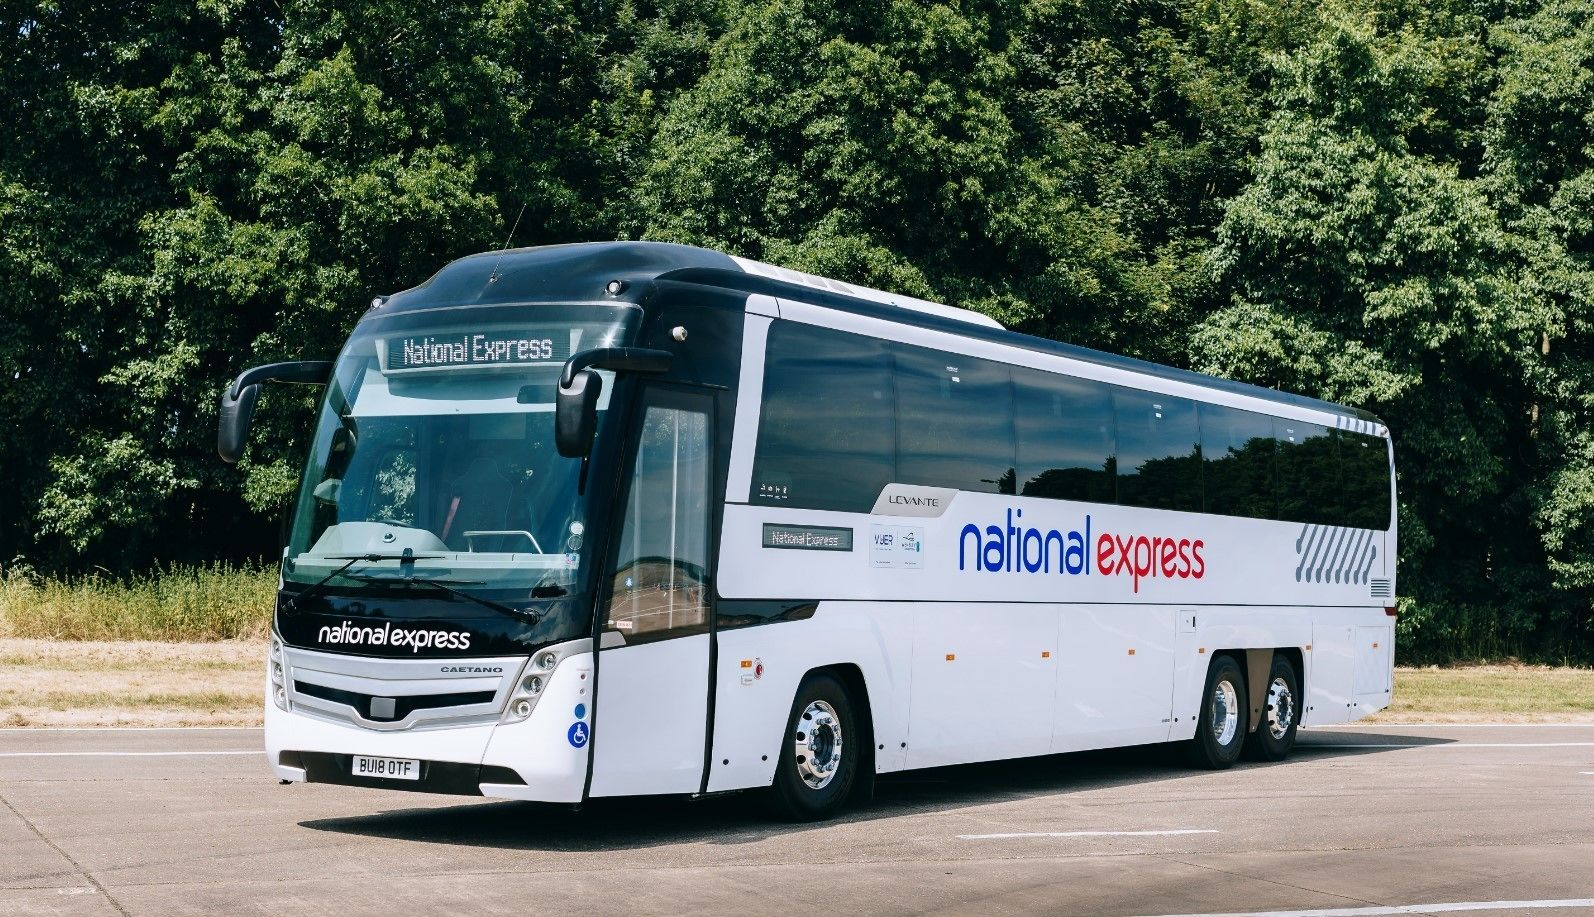 Shared Coach - Heathrow Airport (LHR) to Gatwick Airport (LGW)